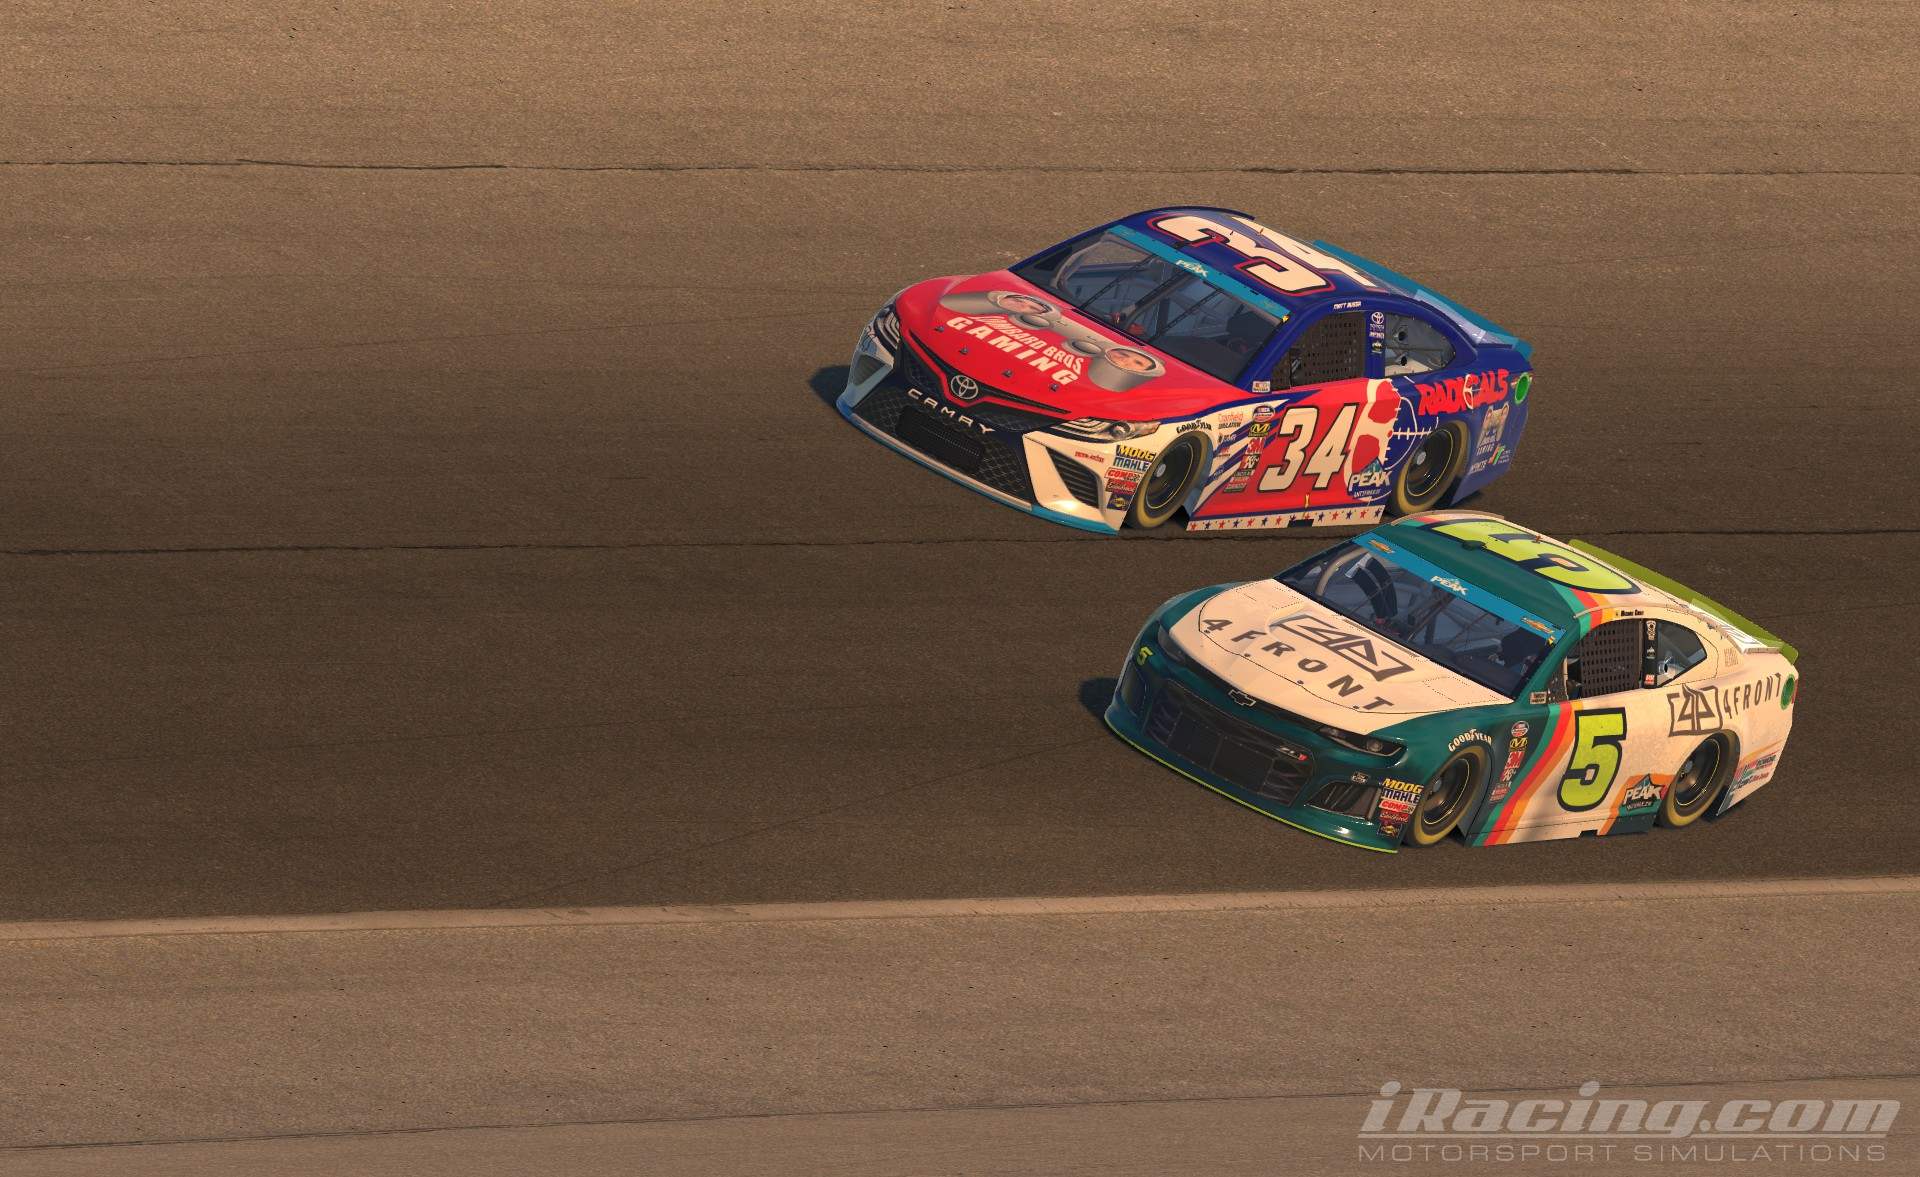 NASCAR PEAK Antifreeze iRacing Series